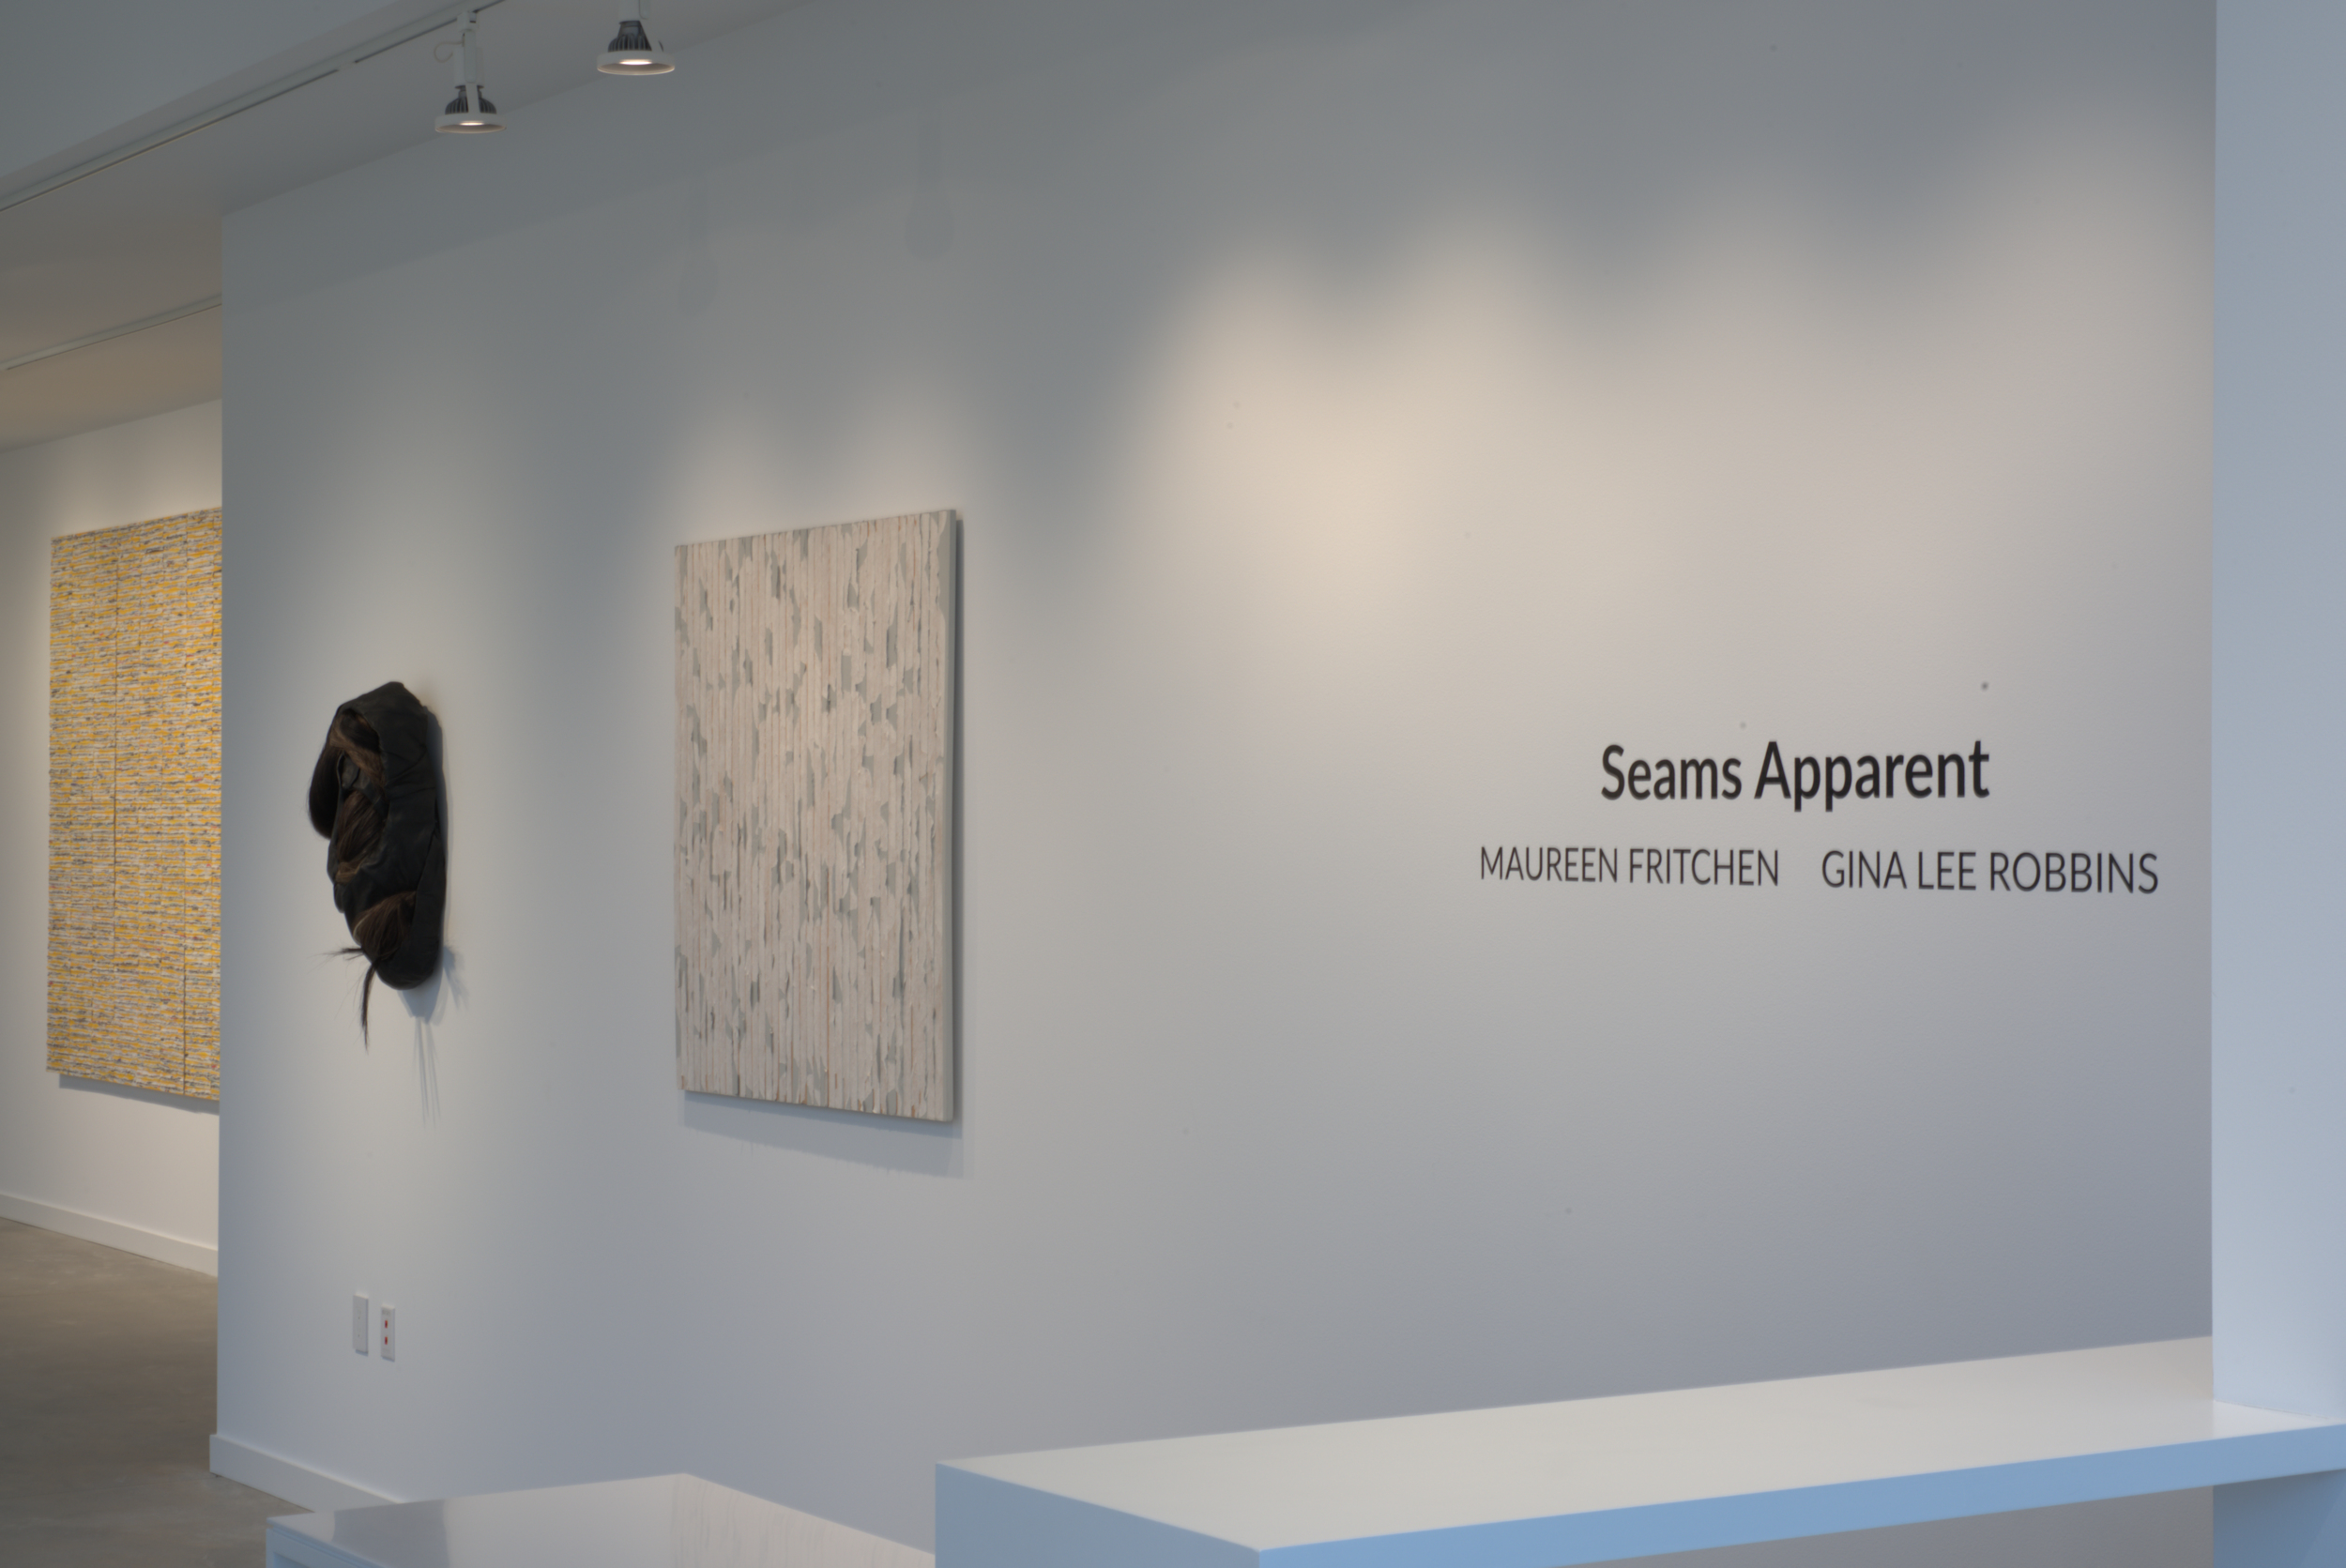 Seams Apparent Southwest View with Show Title